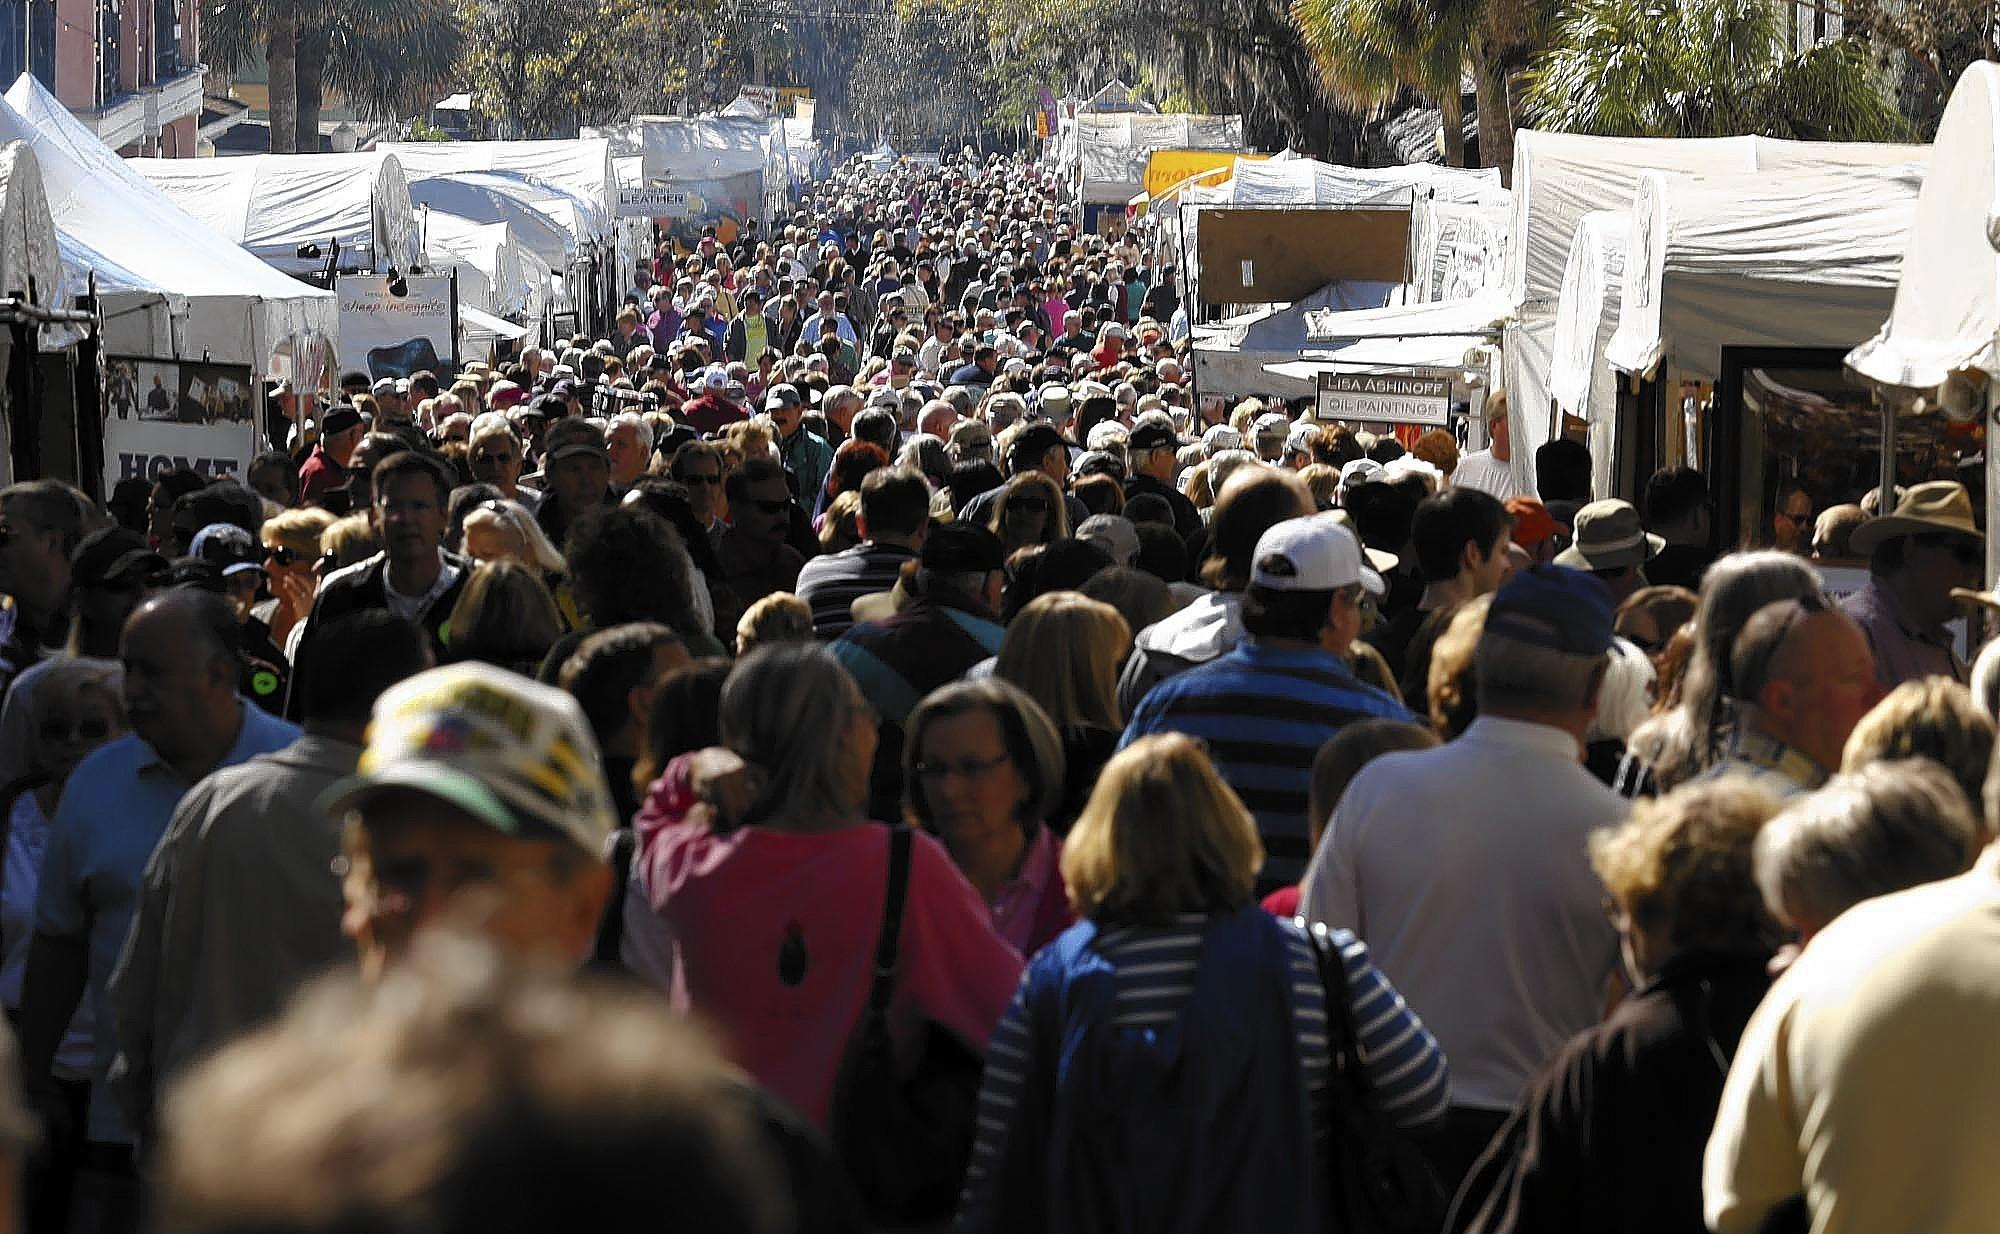 A sea of shoppers crowds Donnelly Street during the Mount Dora Arts Festival on Saturday, February 2, 2013.